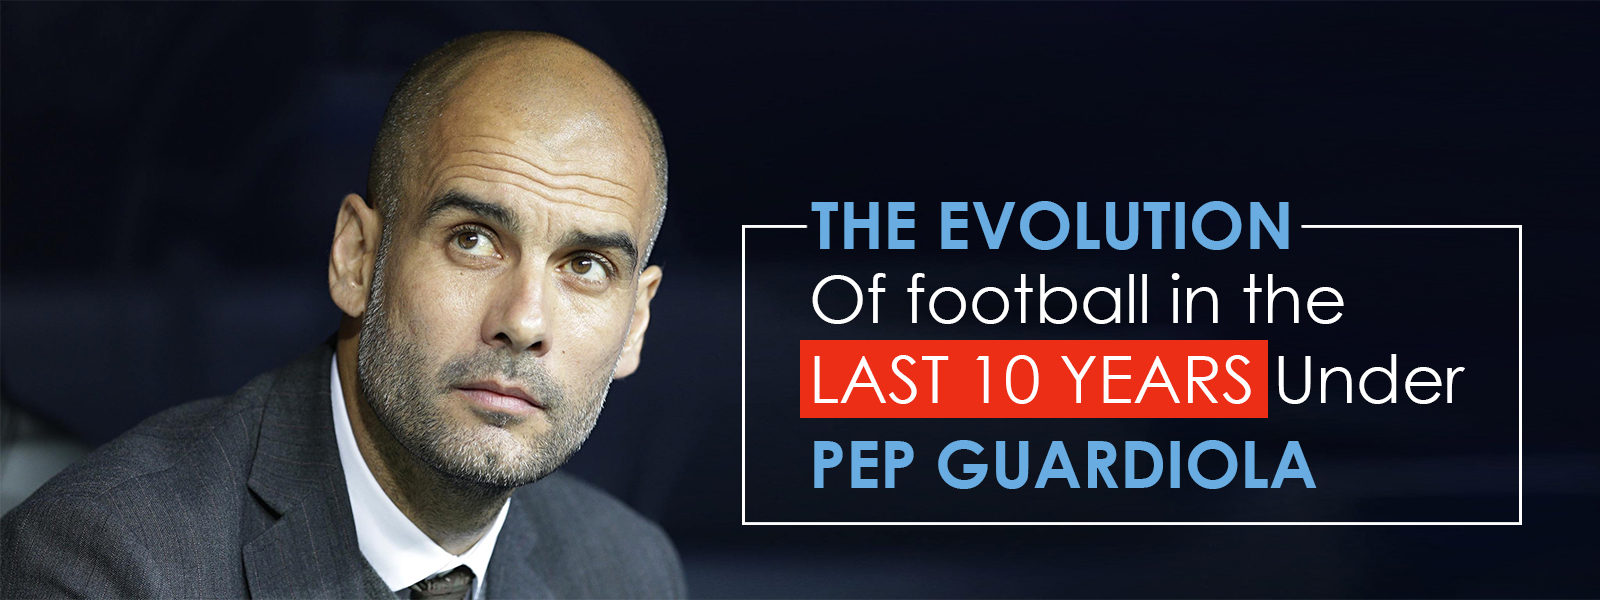 The Evolution Of Football In The Last 10 Years Under Pep Guardiola